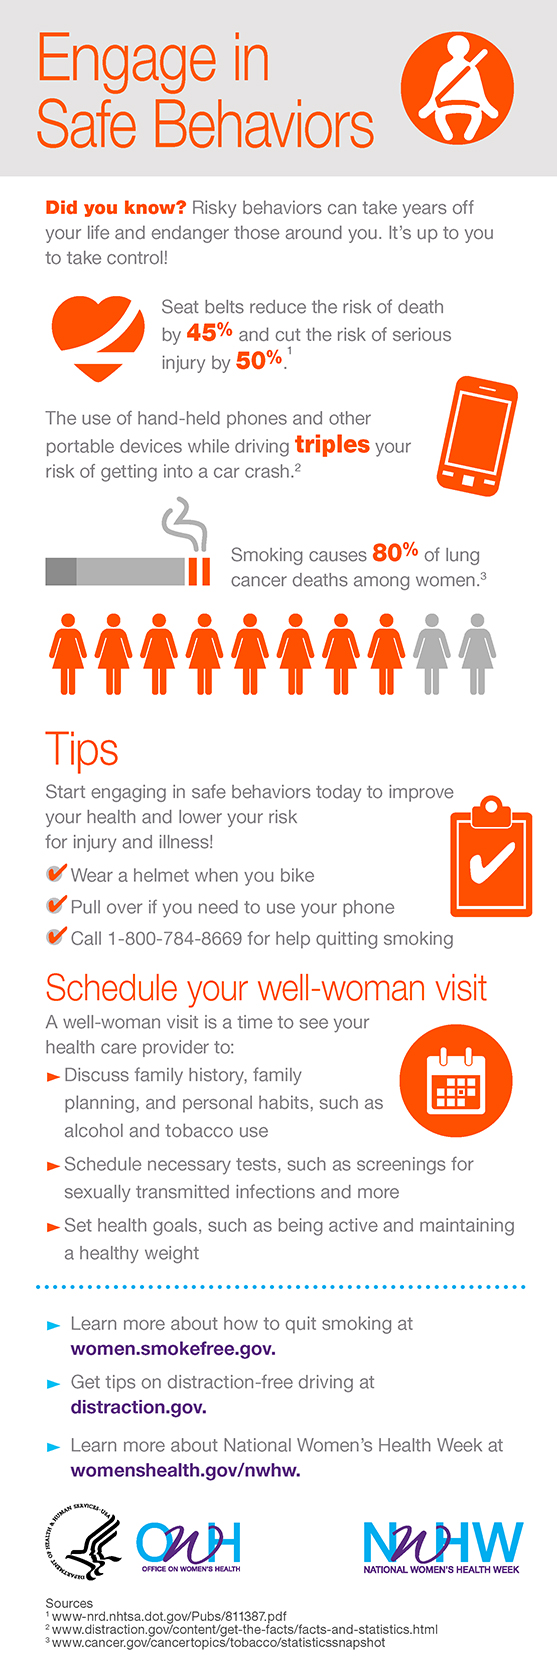 National Women's Health Week: 5 Health Tips from #RelaytheRed & #NWHW